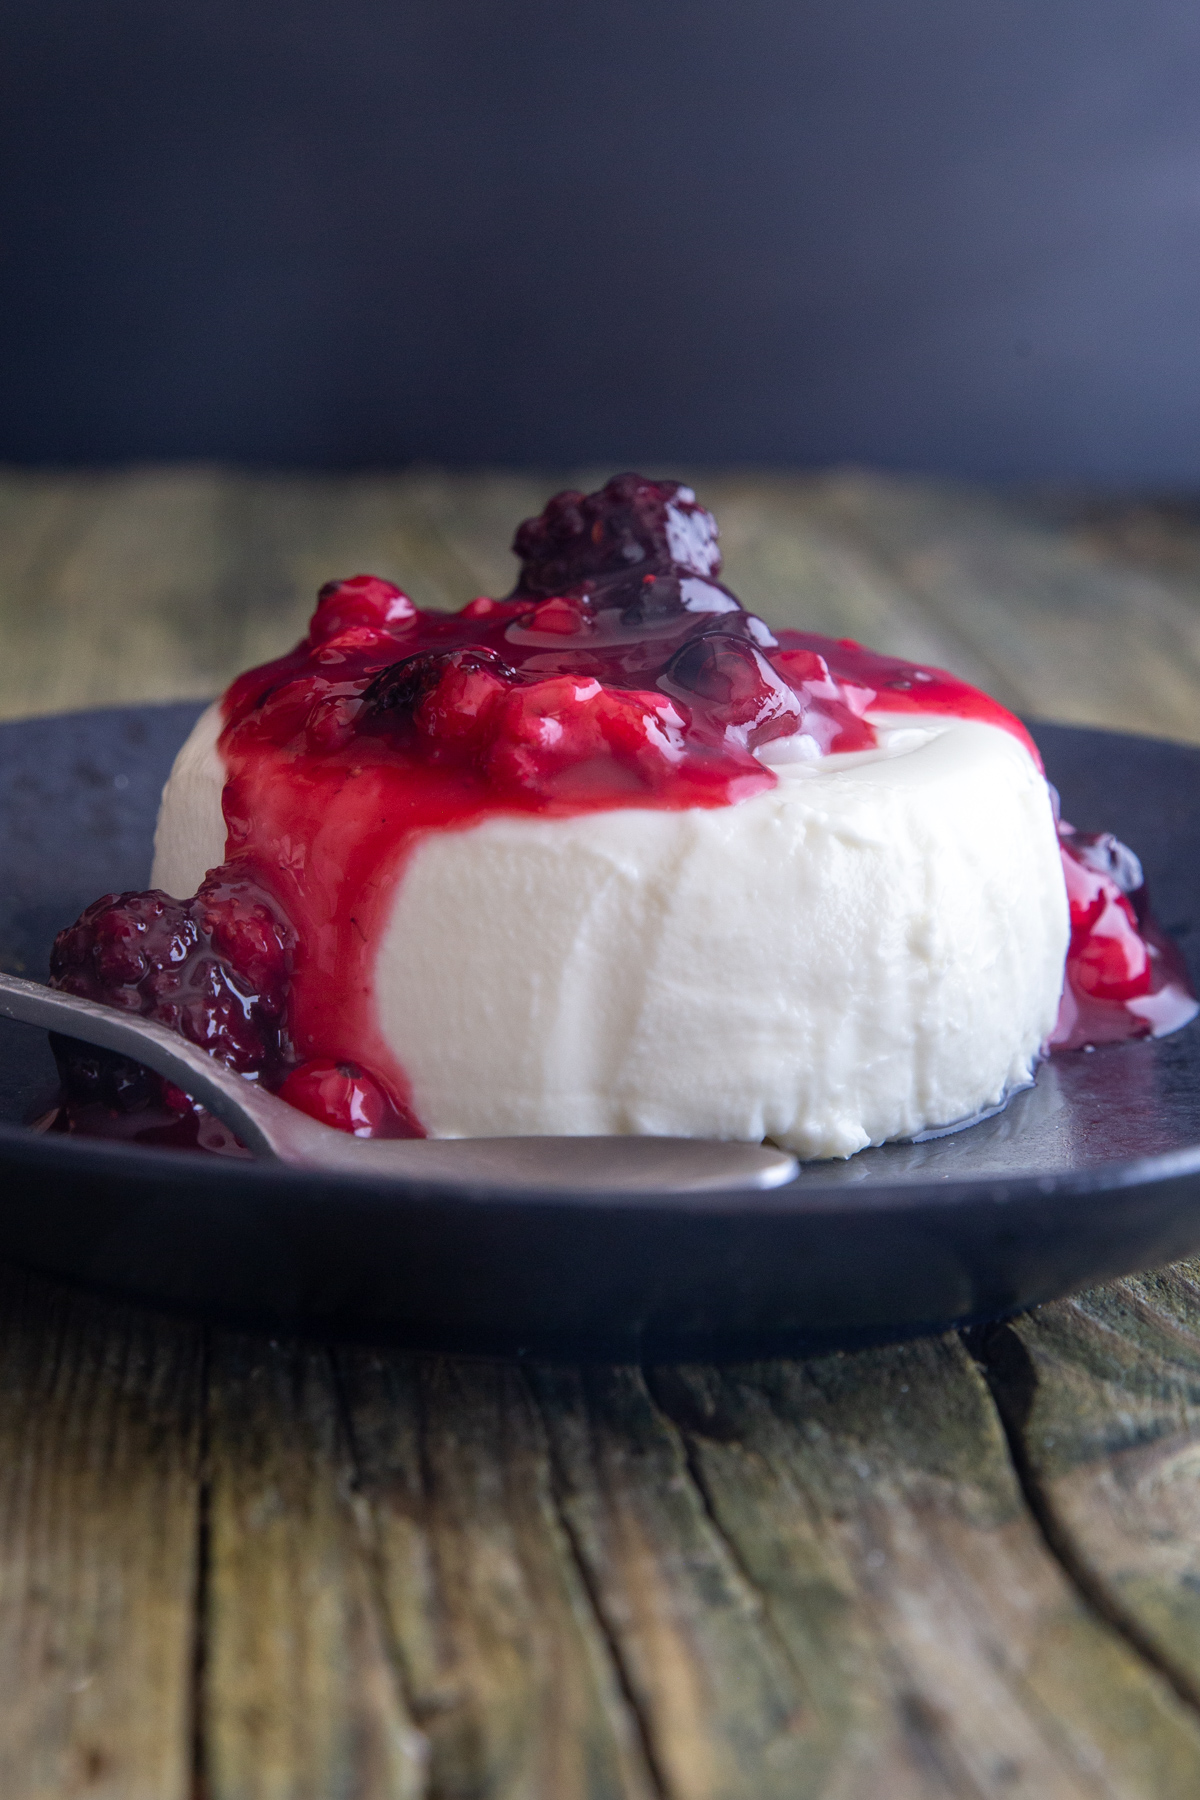 Panna cotta on a black plate with berry sauce.